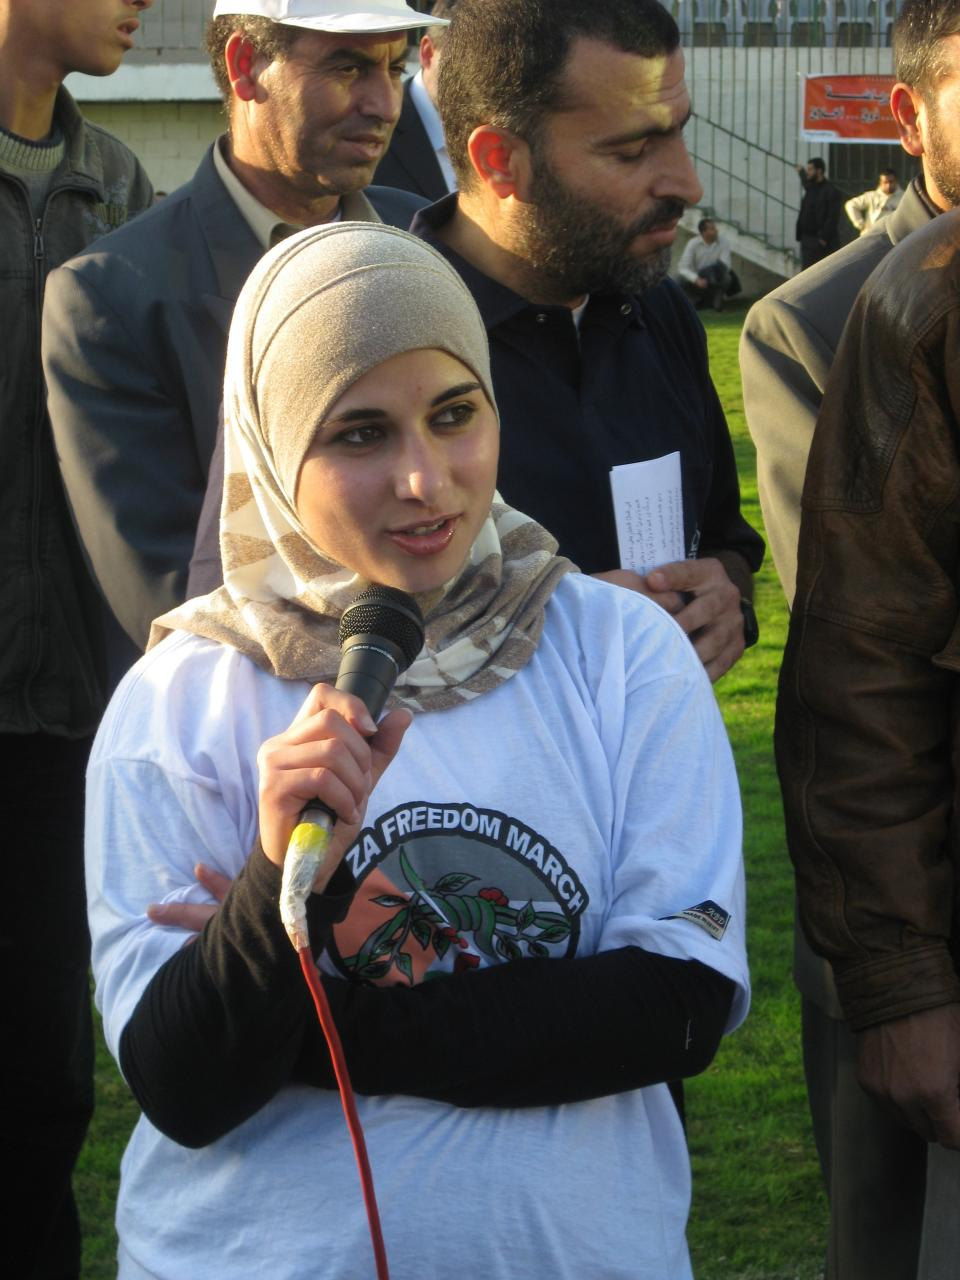 Nuha Masri speaks to the soccer players and officials